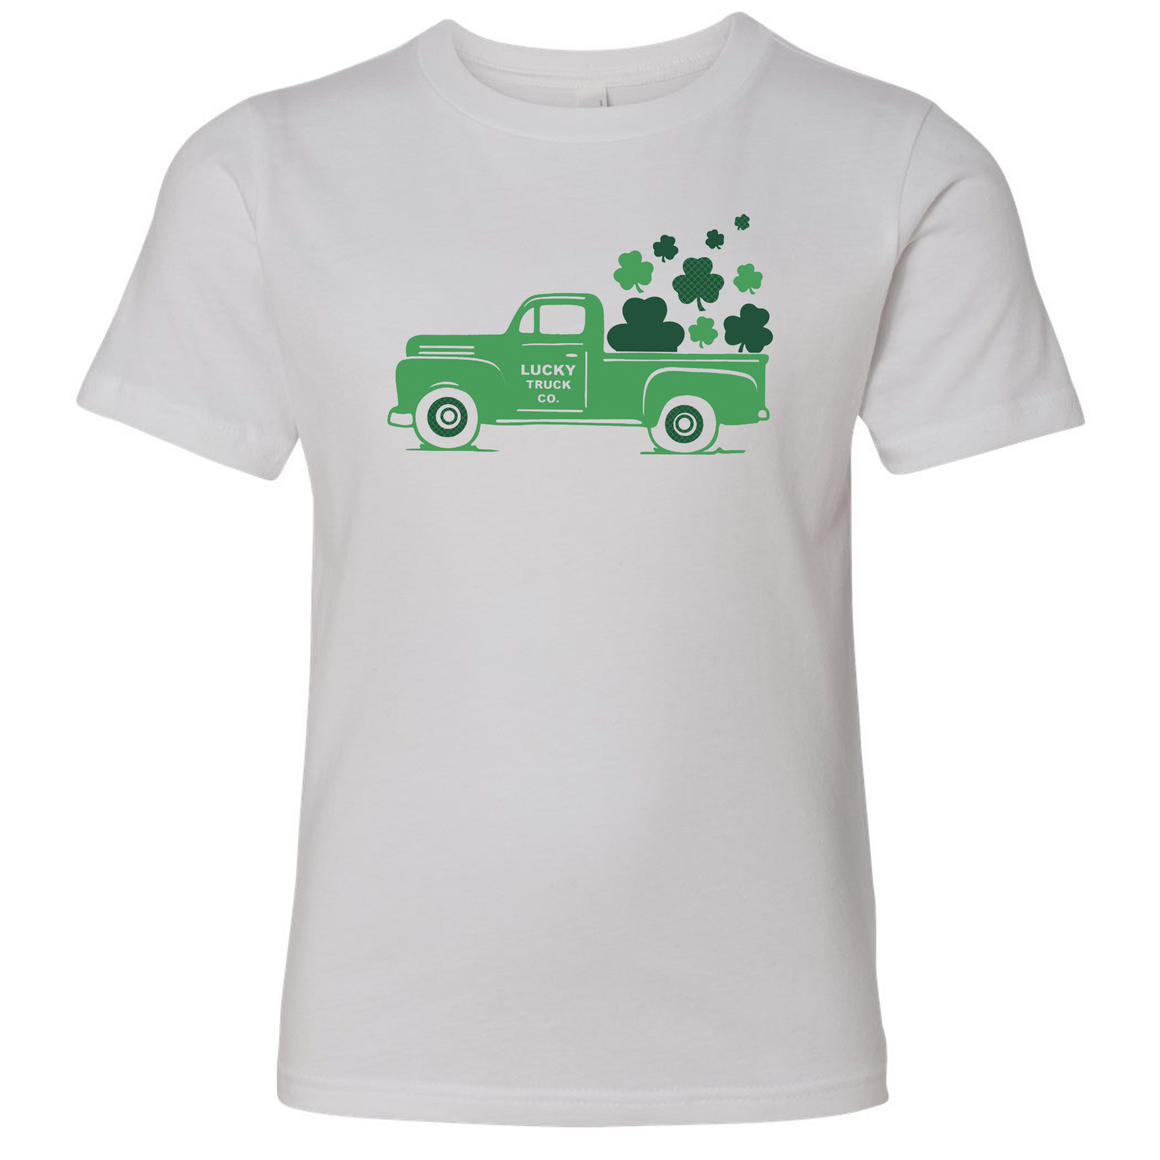 Loads of Luck Truck T-Shirt (Toddler and Youth)